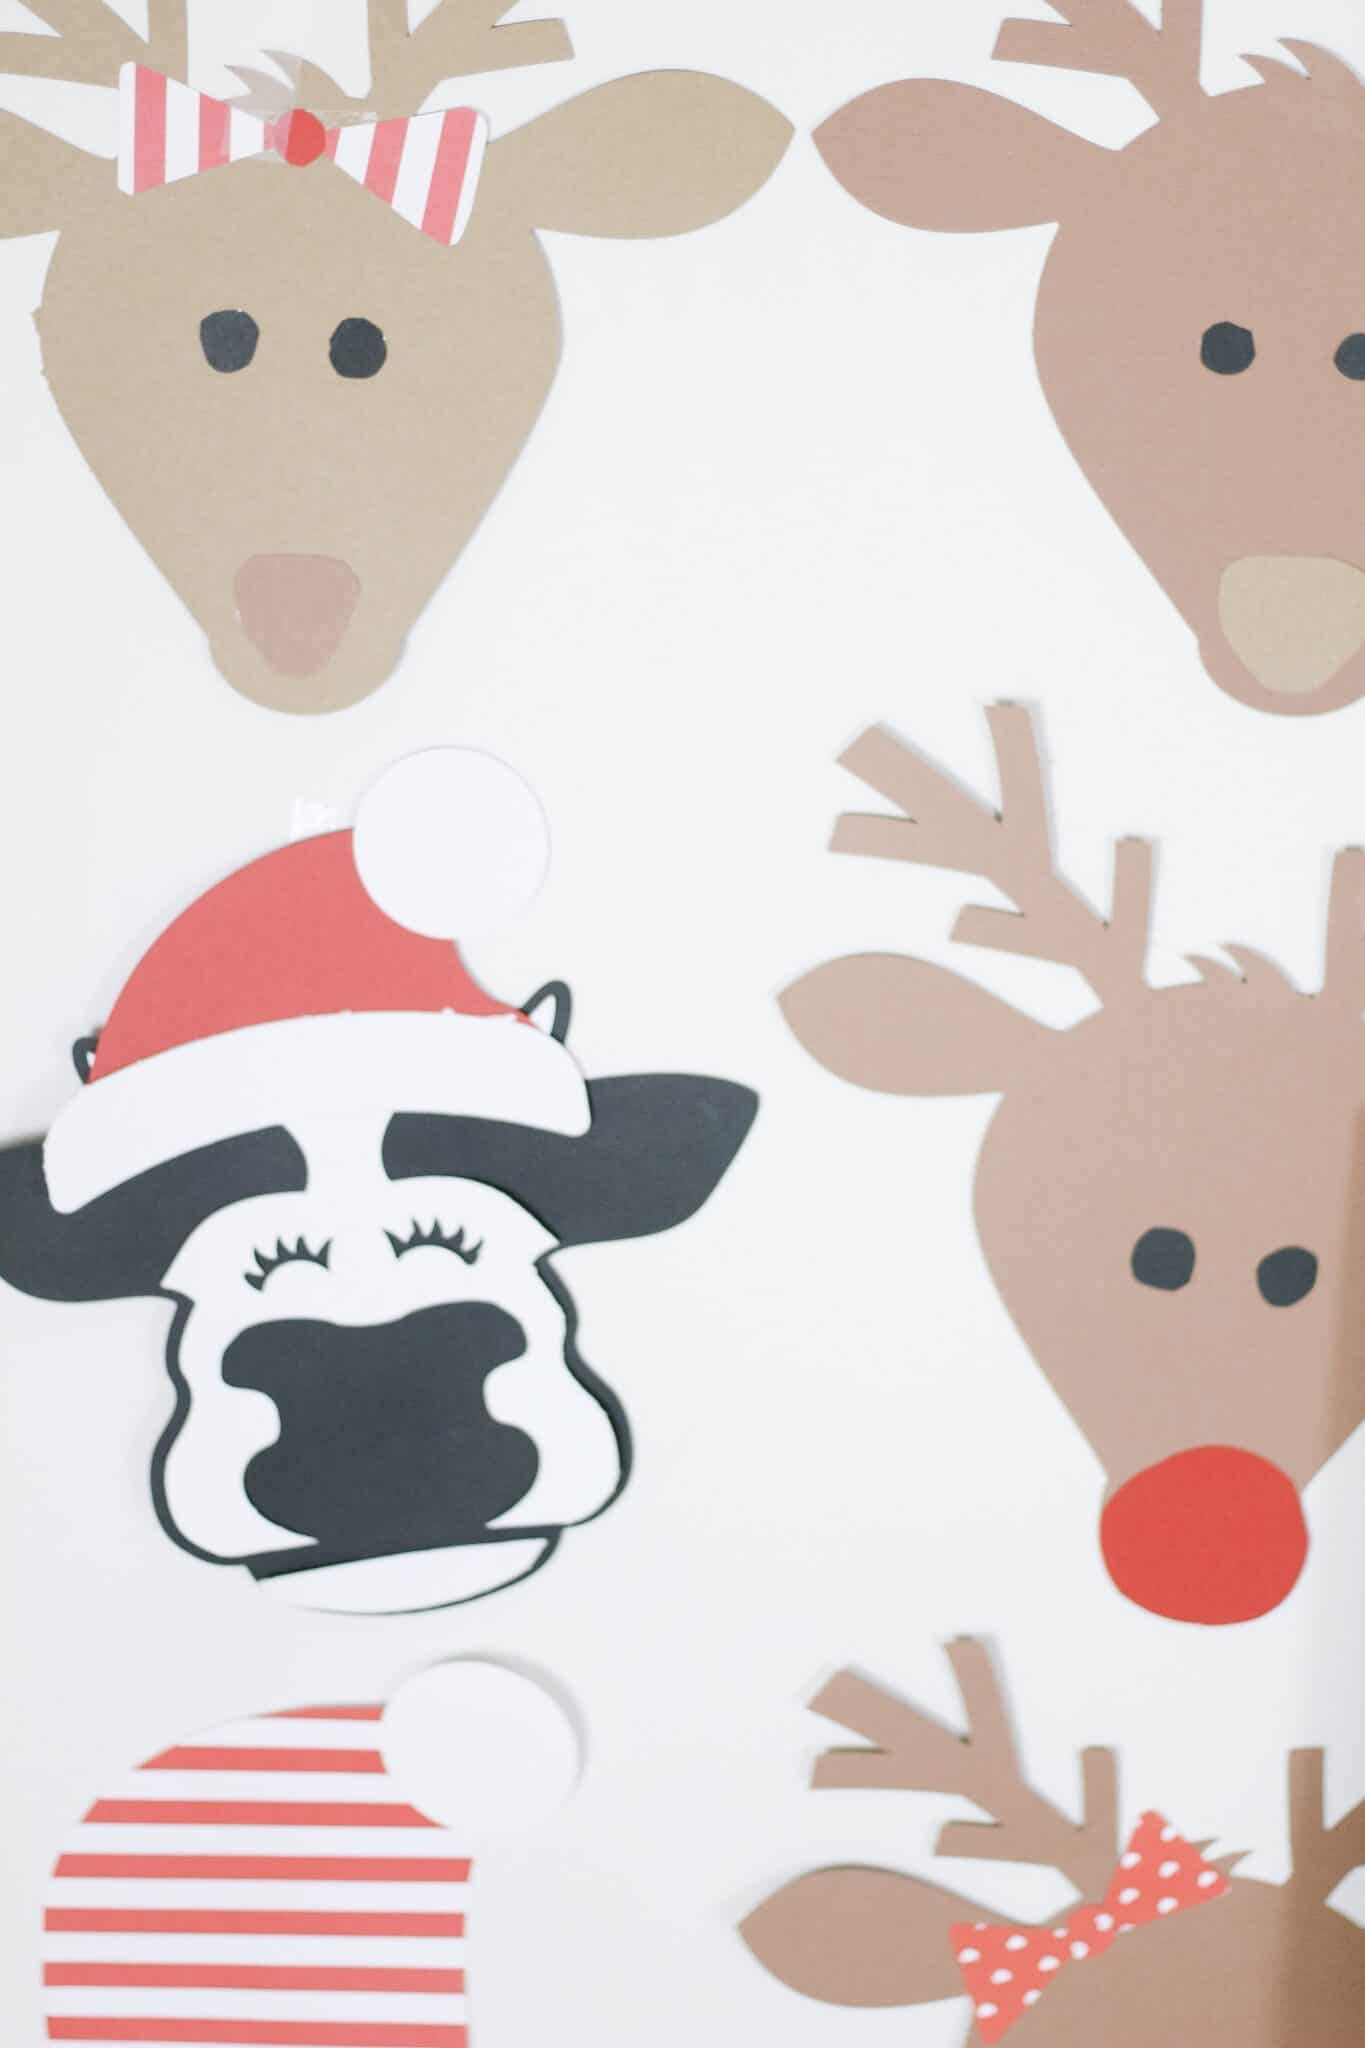 cows wearing Santa hats and reindeer